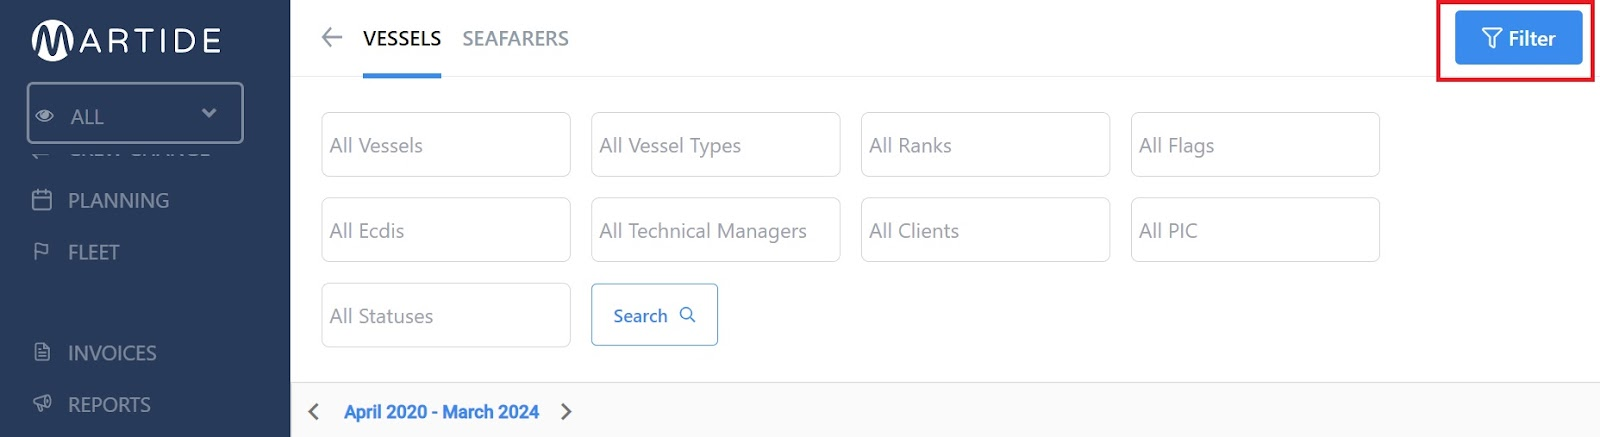 screenshot of the vessels page showing the filter button